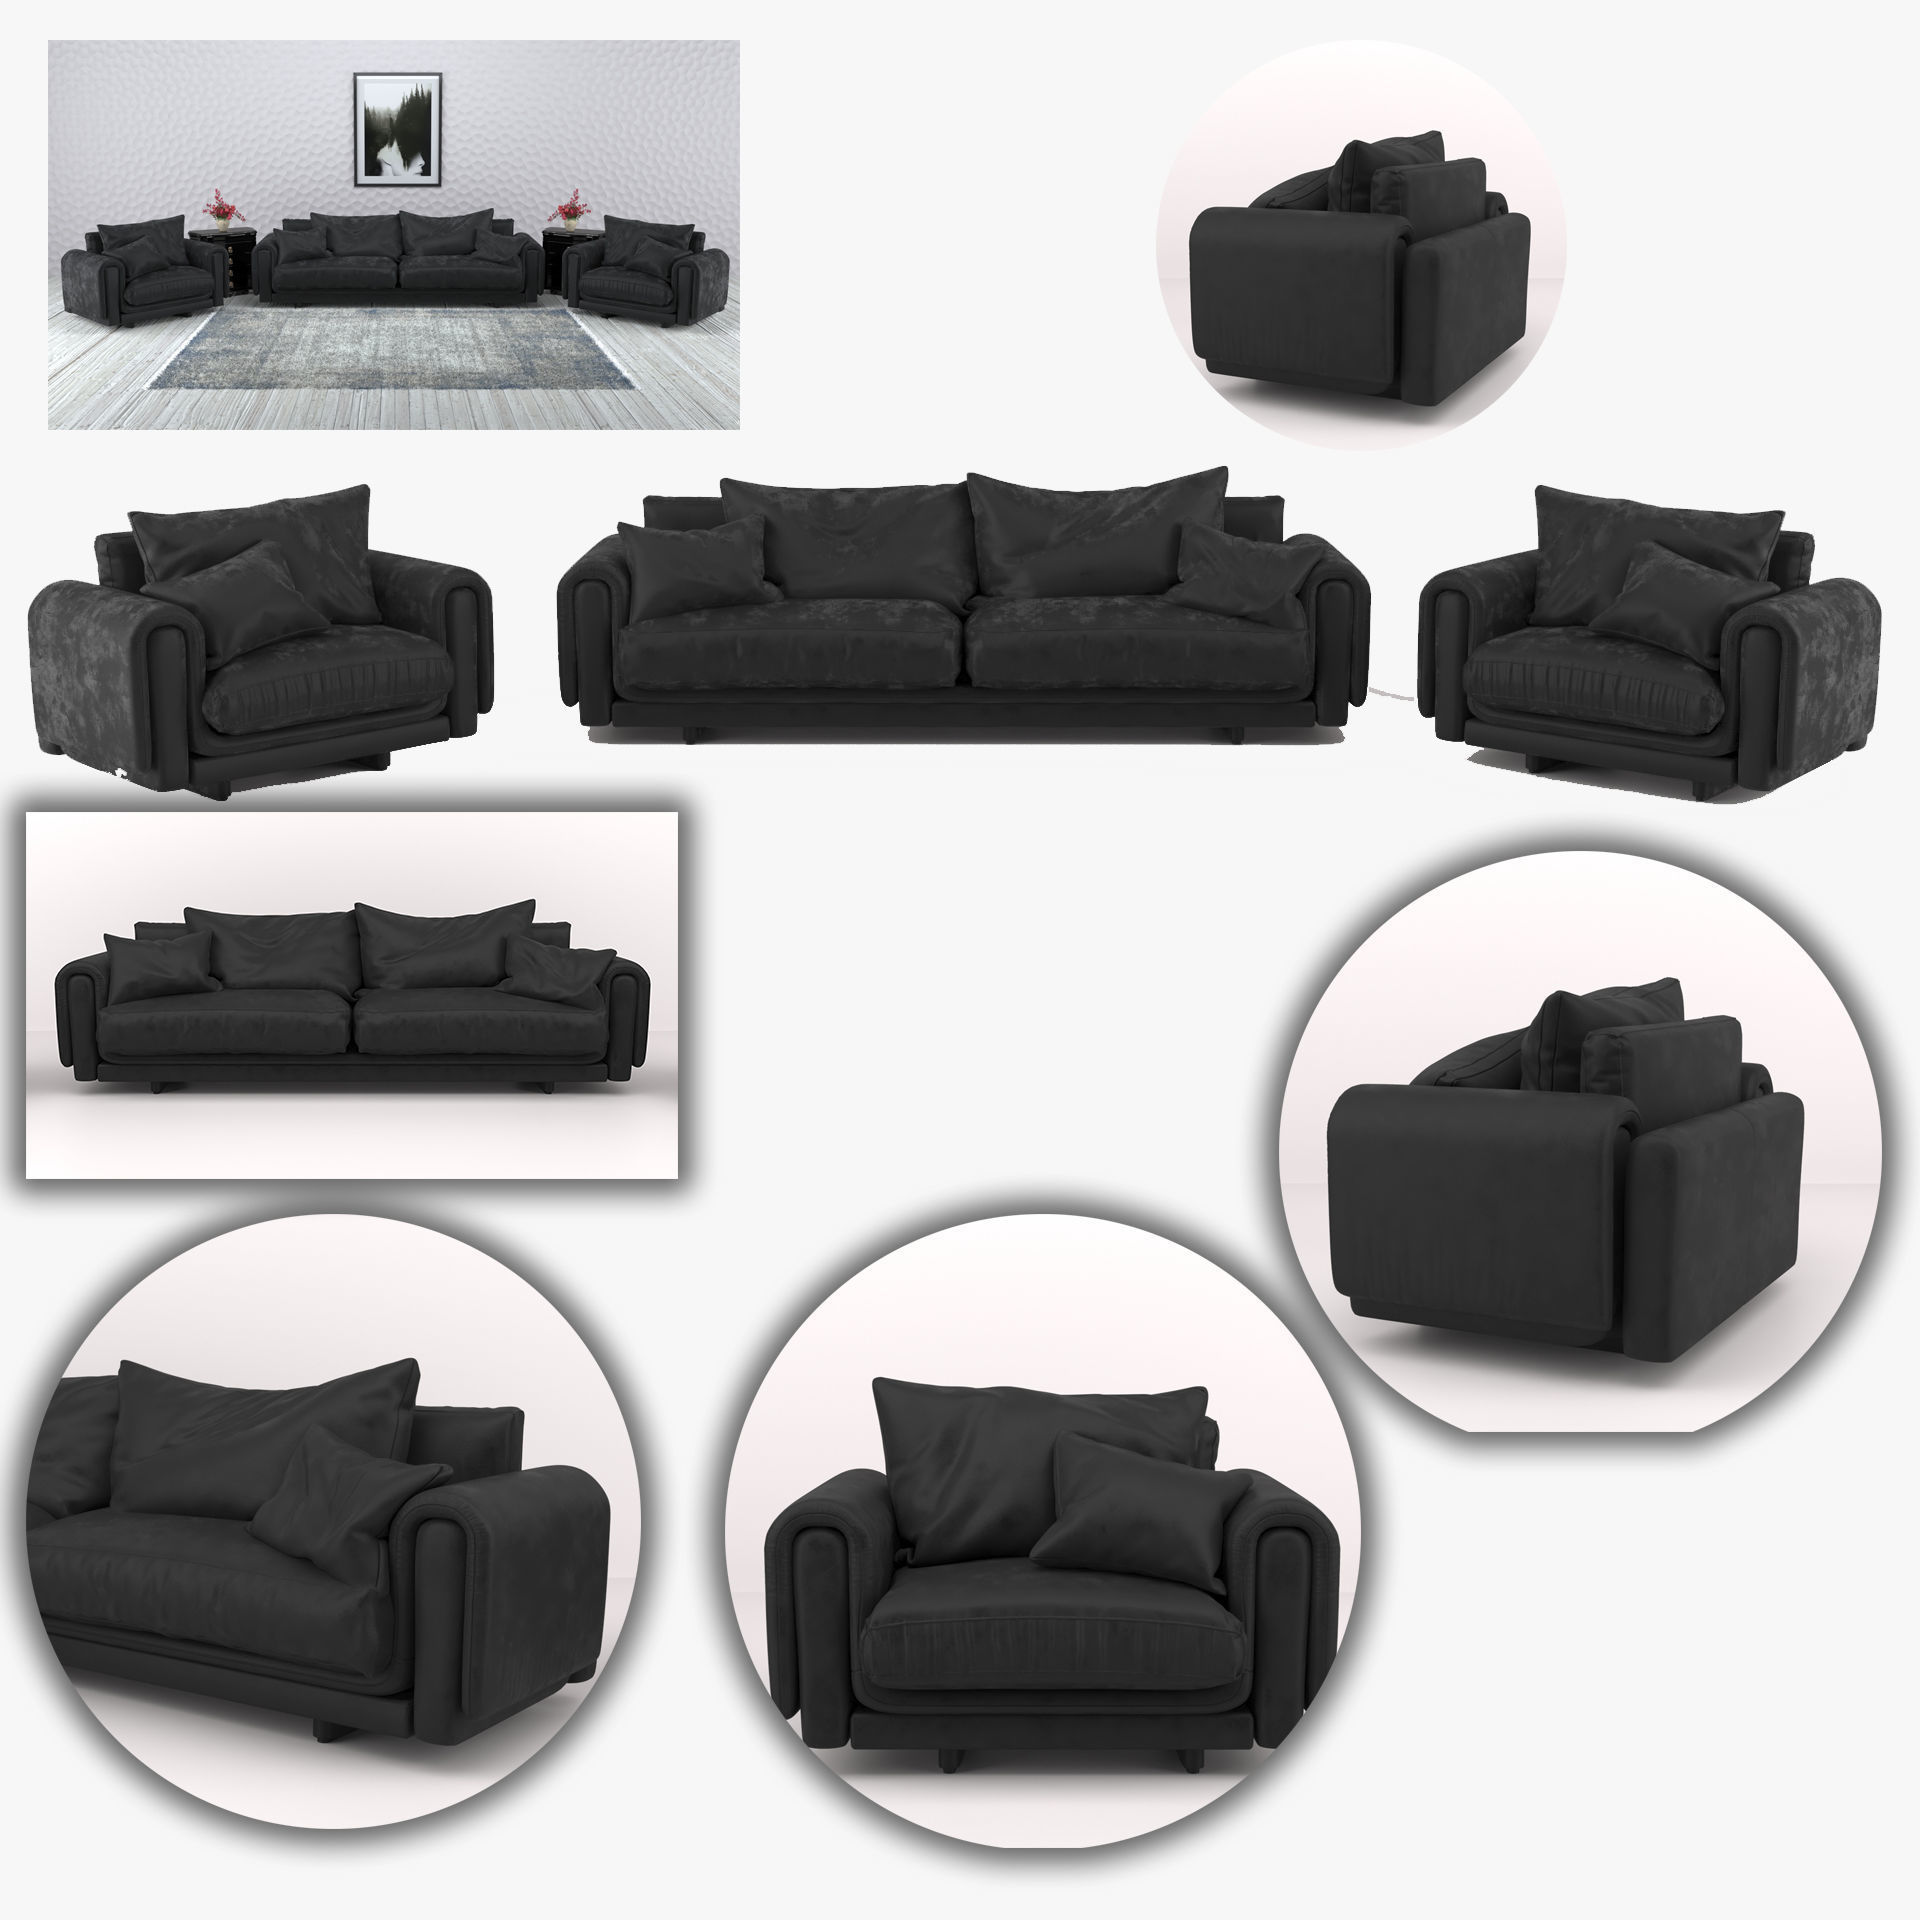 Black leather sofa and armchair furniture set | 3D model